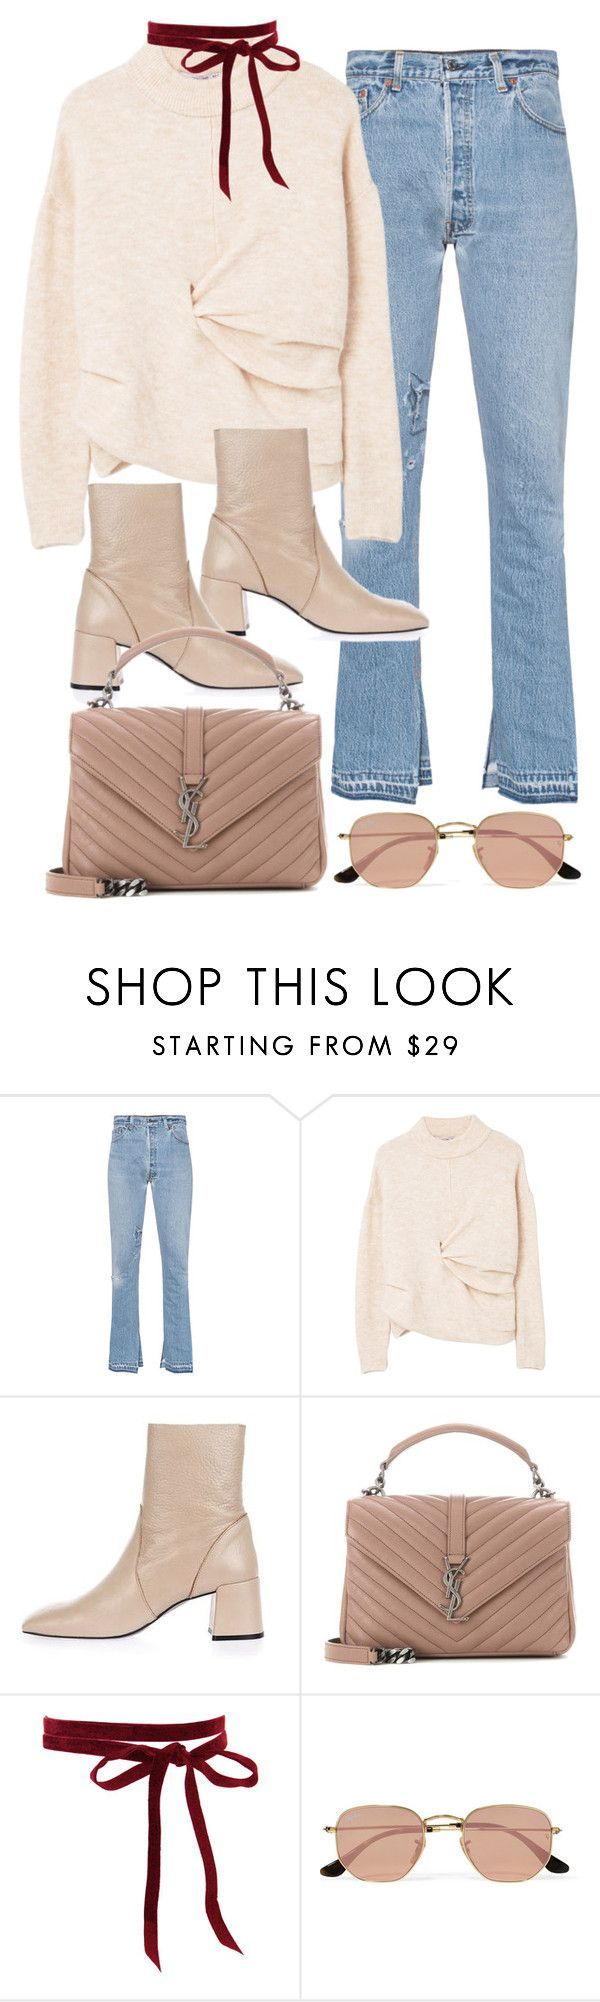 Untitled #11259 by minimalmanhattan on Polyvore featuring RE/DONE, MANGO, Topshop, Yves Saint Laurent and Ray-Ban